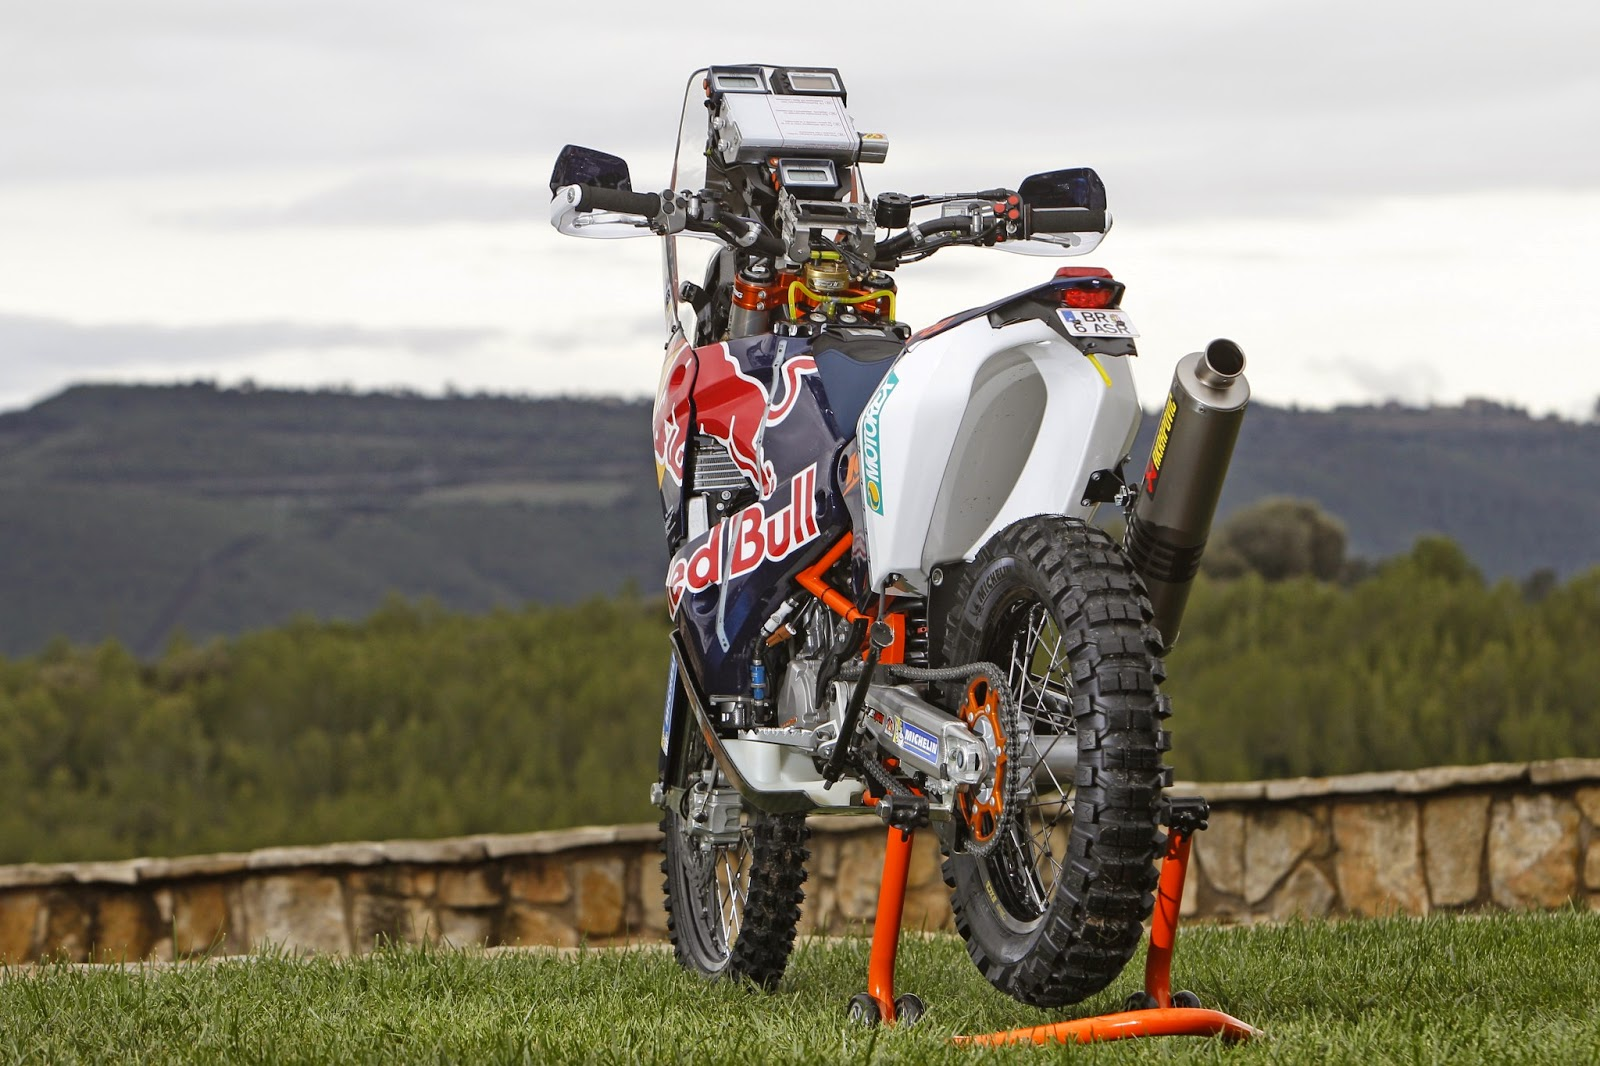 racing caf ktm rally 450 red bull ktm rally factory team 2015. Black Bedroom Furniture Sets. Home Design Ideas